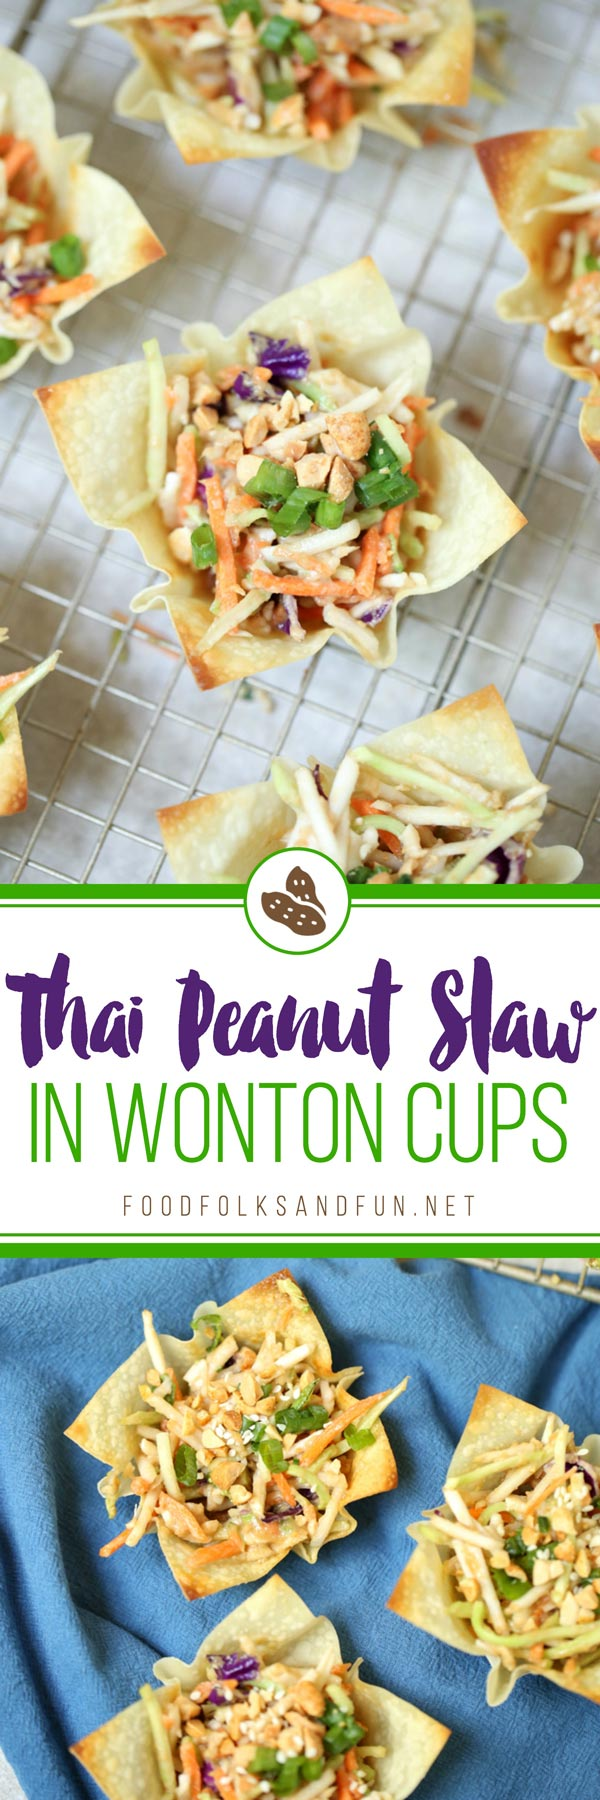 Asian Coleslaw with Thai Peanut Dressing in Wonton Cups is an easy side dish or appetizer for summer cookouts. via @foodfolksandfun